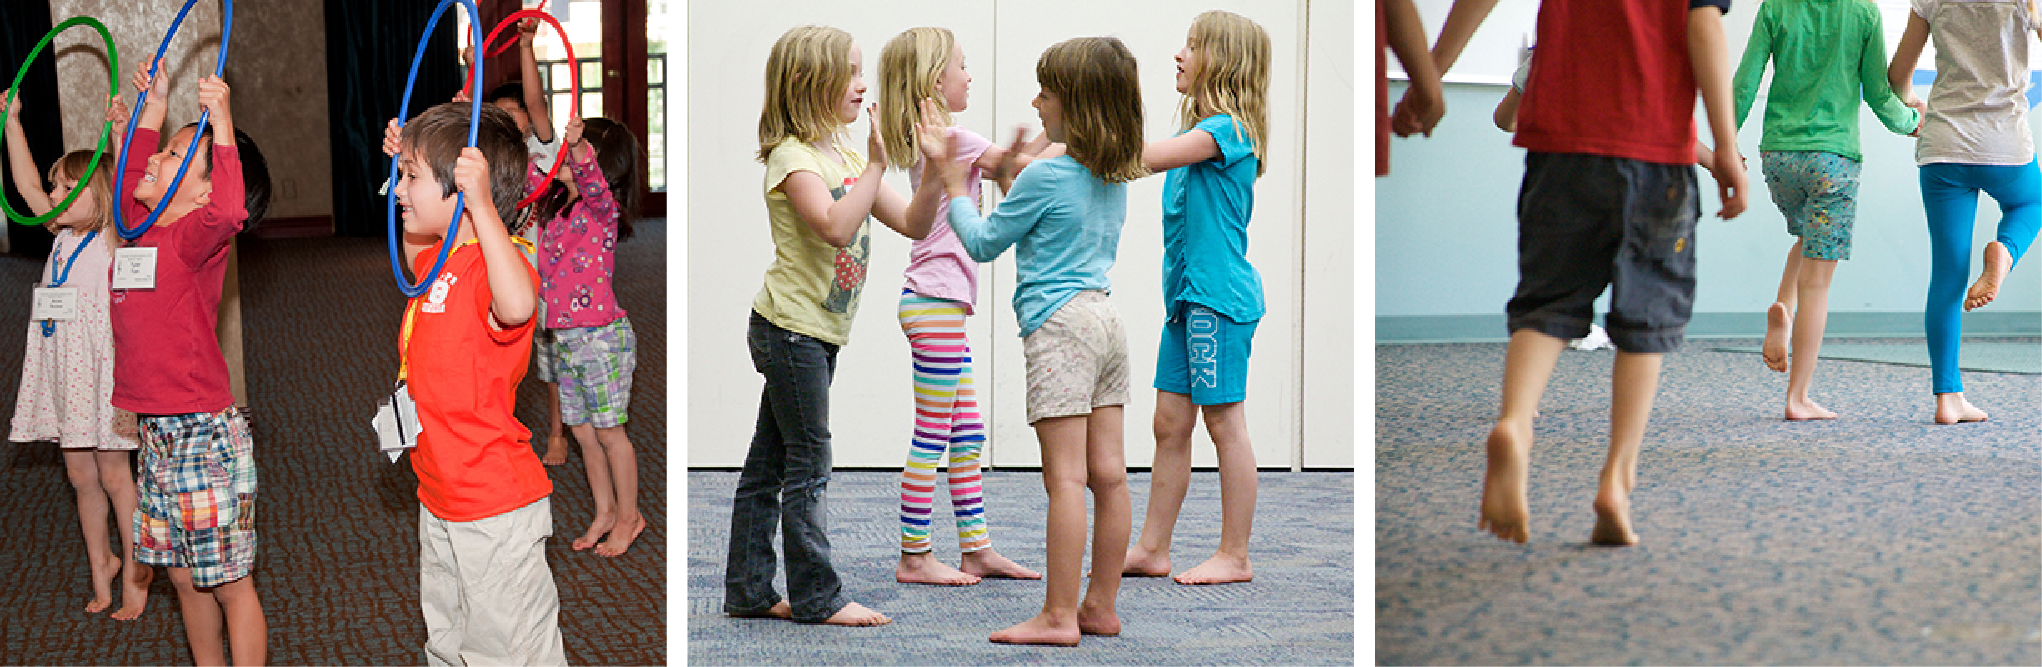 Dalcroze-Eurhythmics™ for Young Children in denver